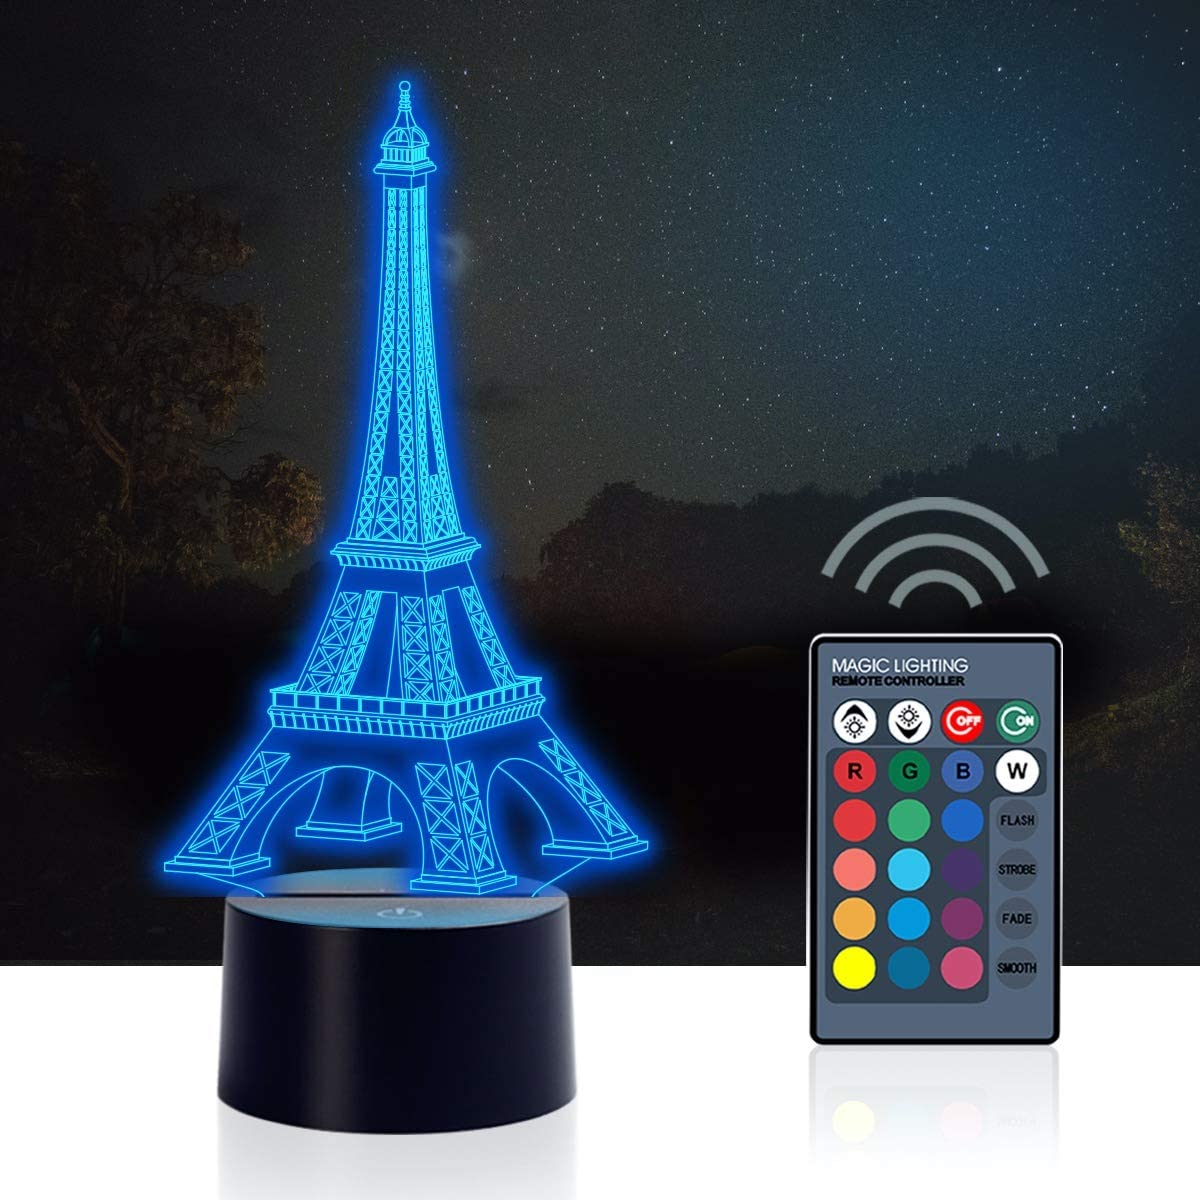 Urwise romantic Eiffel Tower in Paris France 3D Optical Illusion Night Light,7 Colors Changing,Smart Touch Button USB Powered,Amazing Creative Art Design for Home Decor ZB-2821